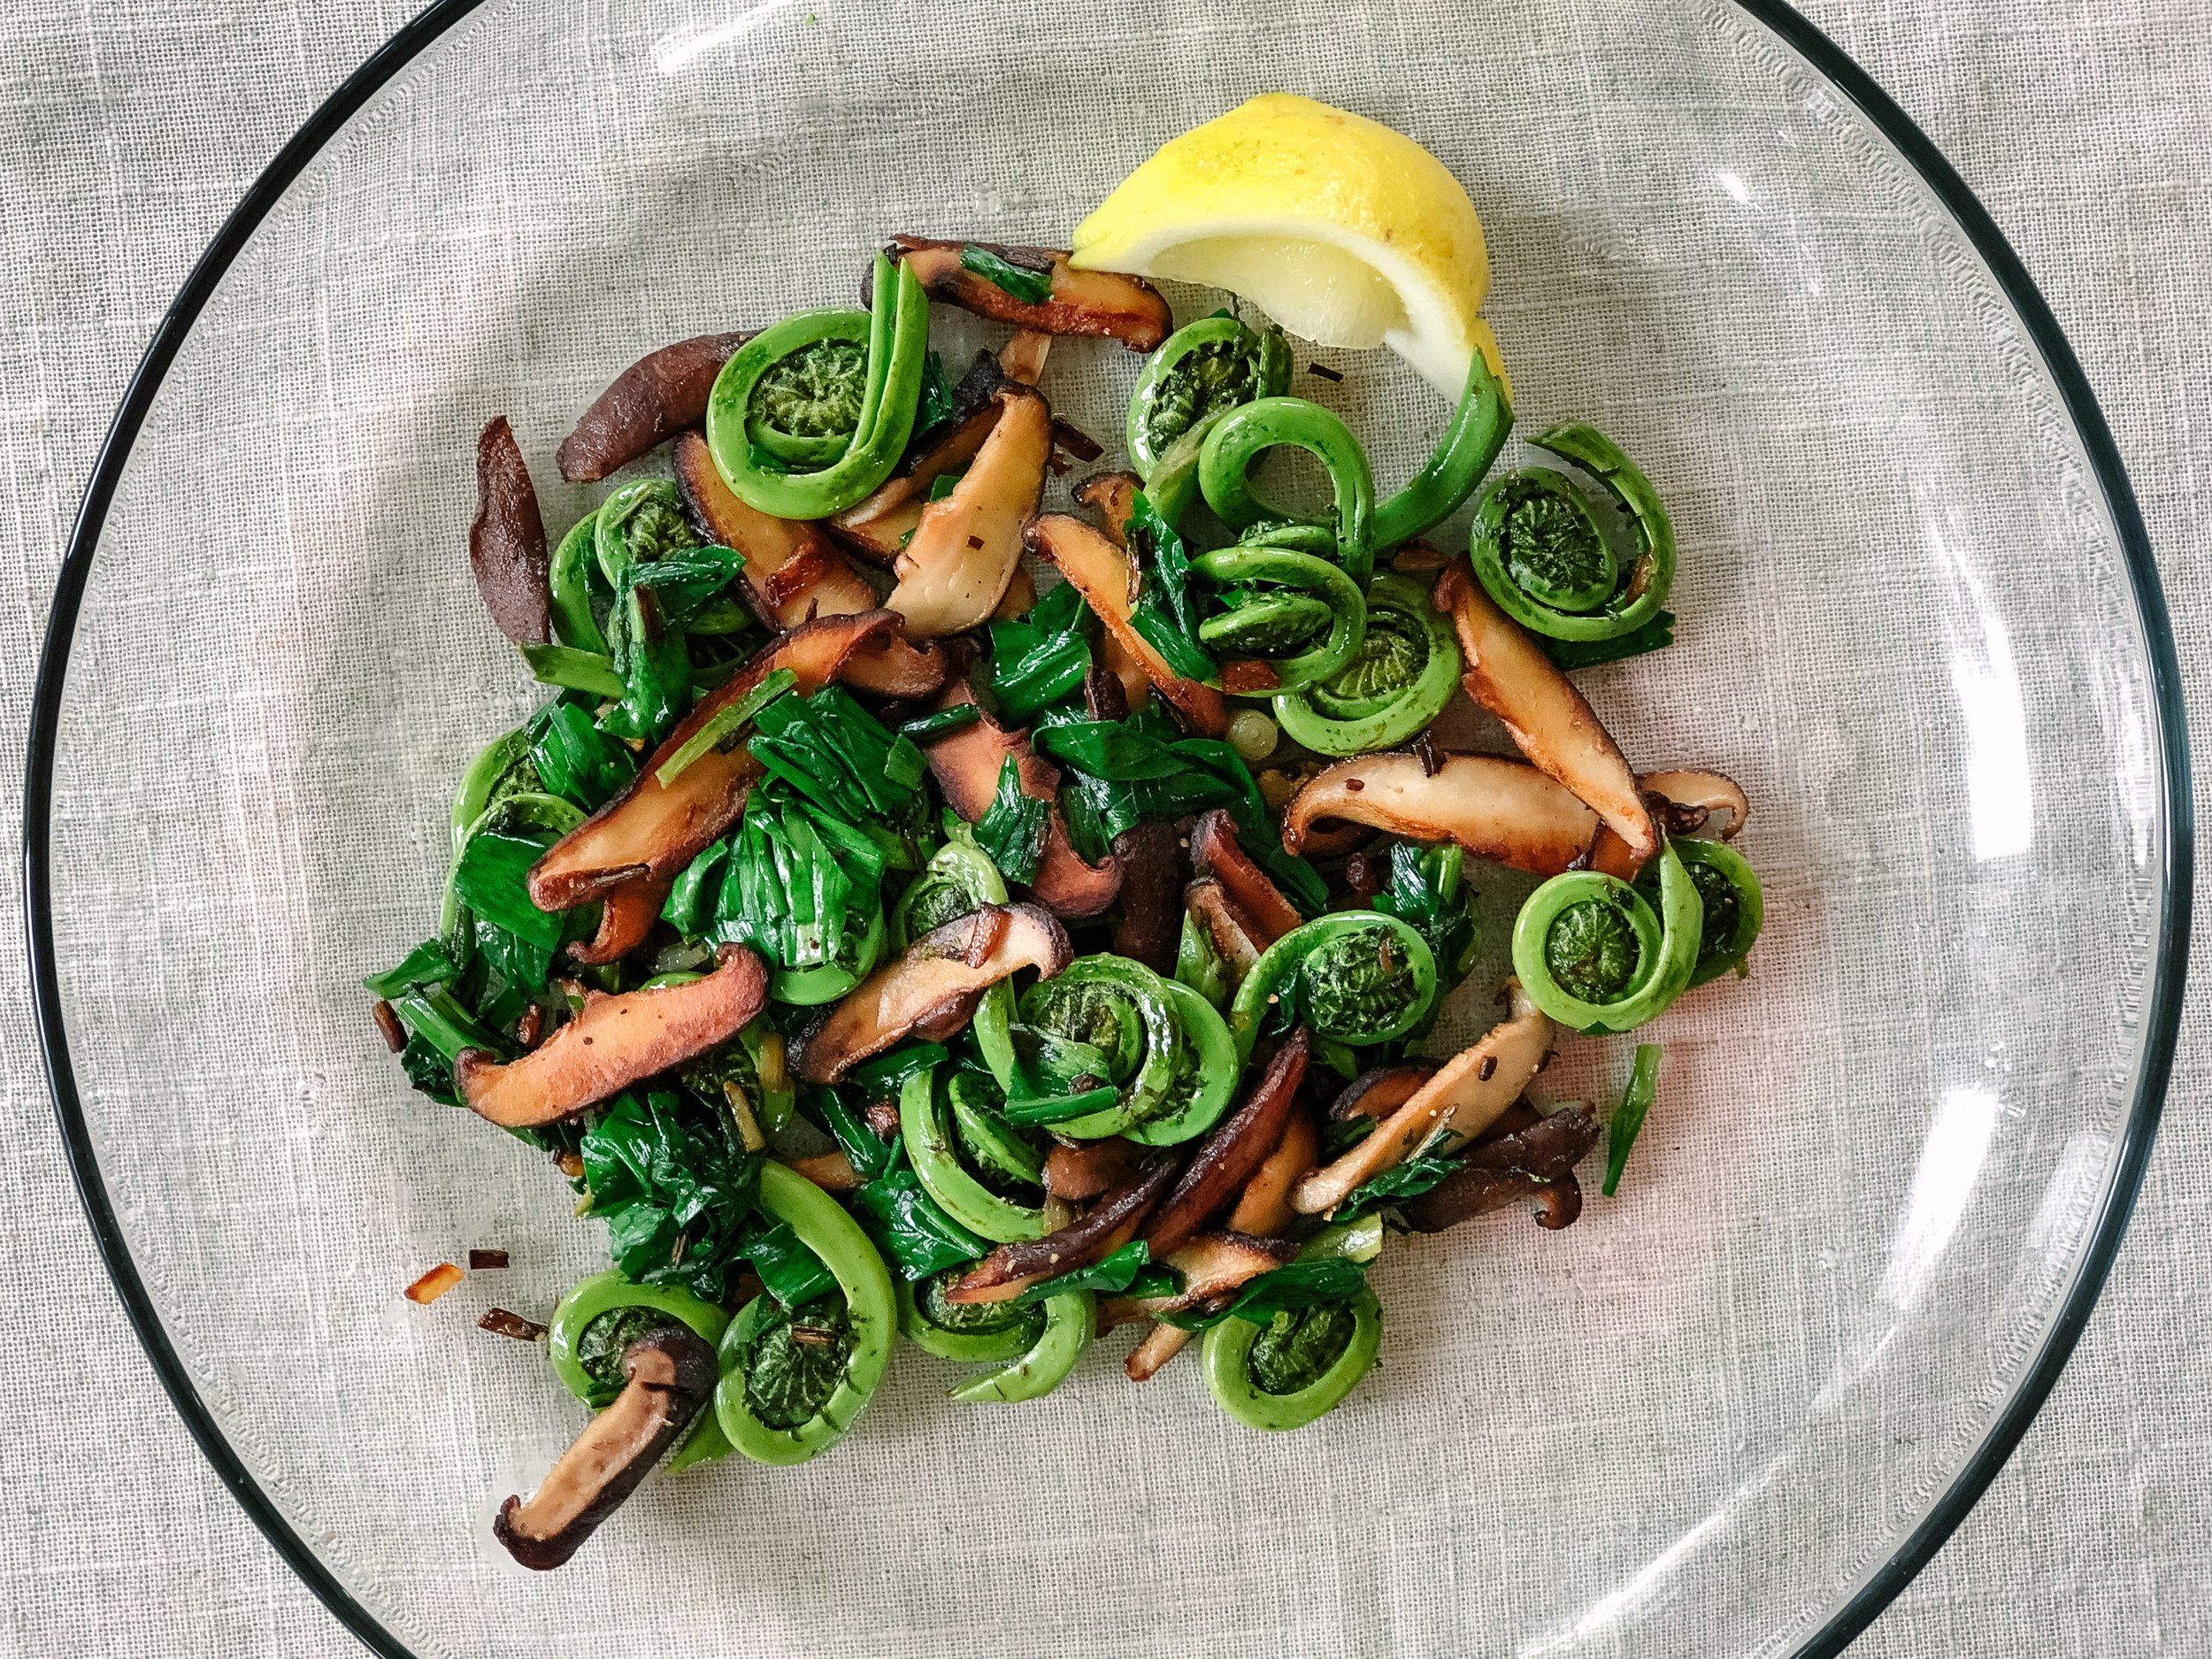 Forages fiddleheads and ramps with shiitake mushrooms